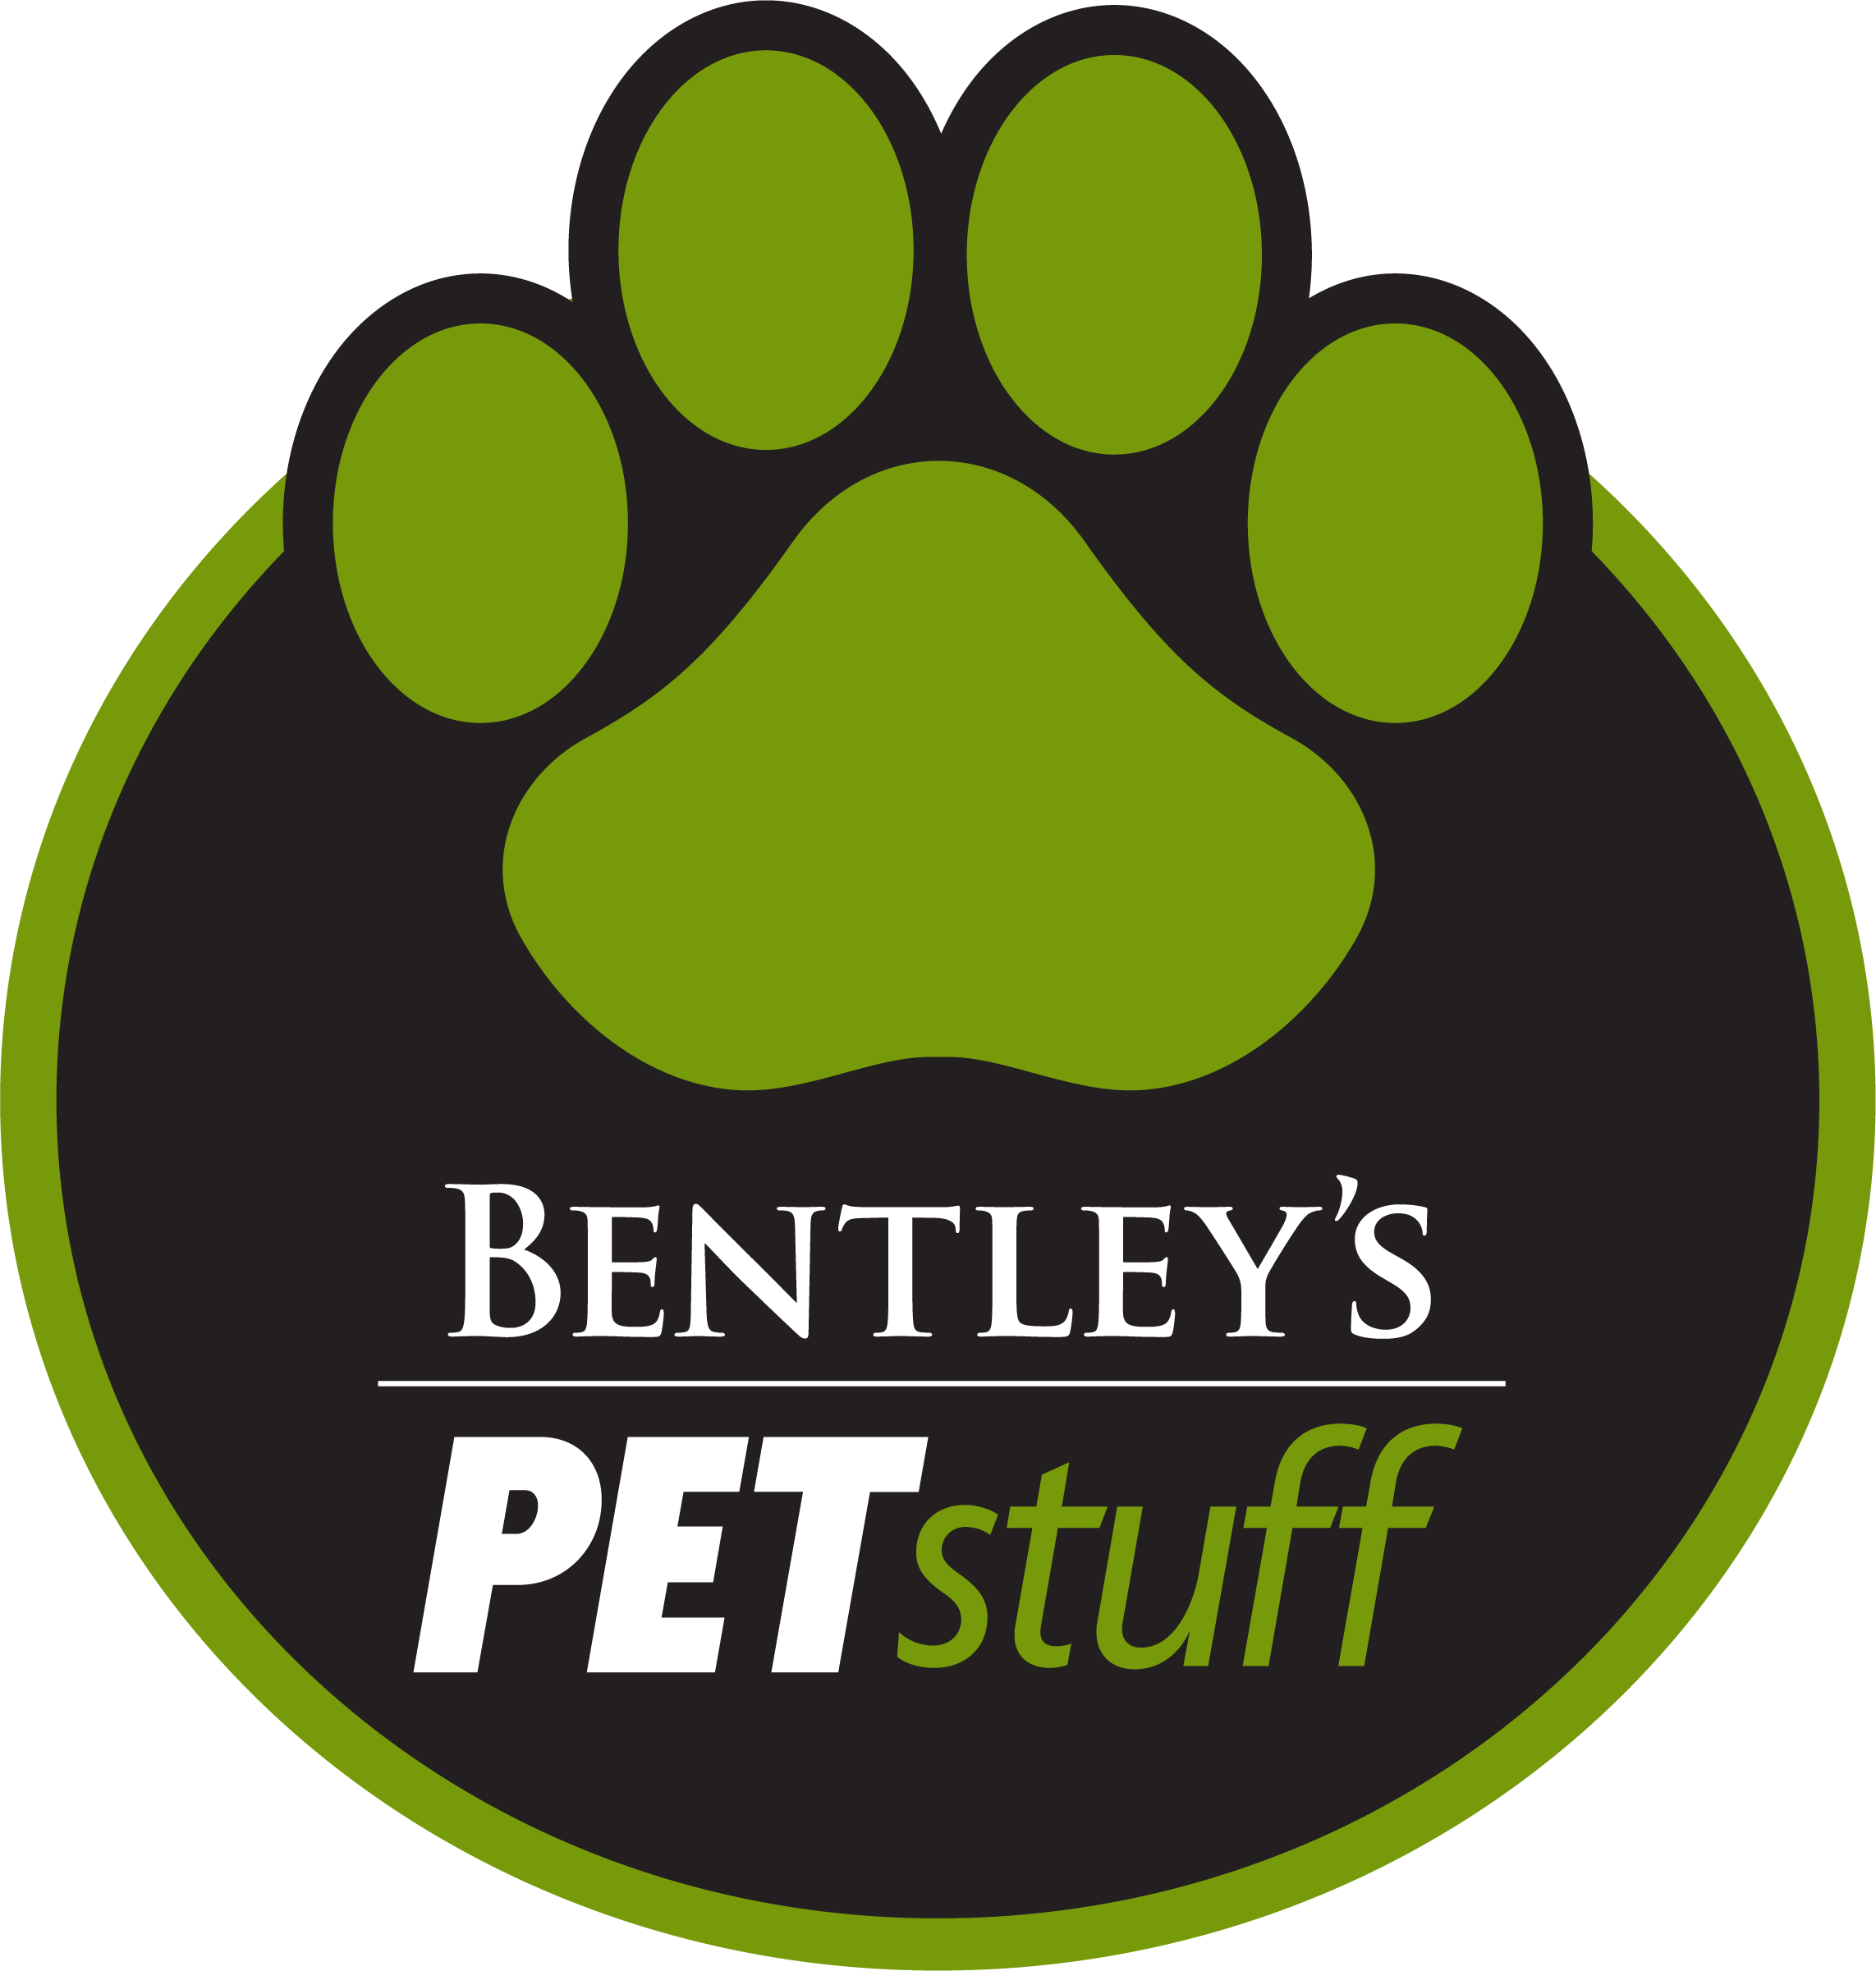 PetAge: Bentley's Pet Stuff Expands in Midwest: Ann Arbor, MI